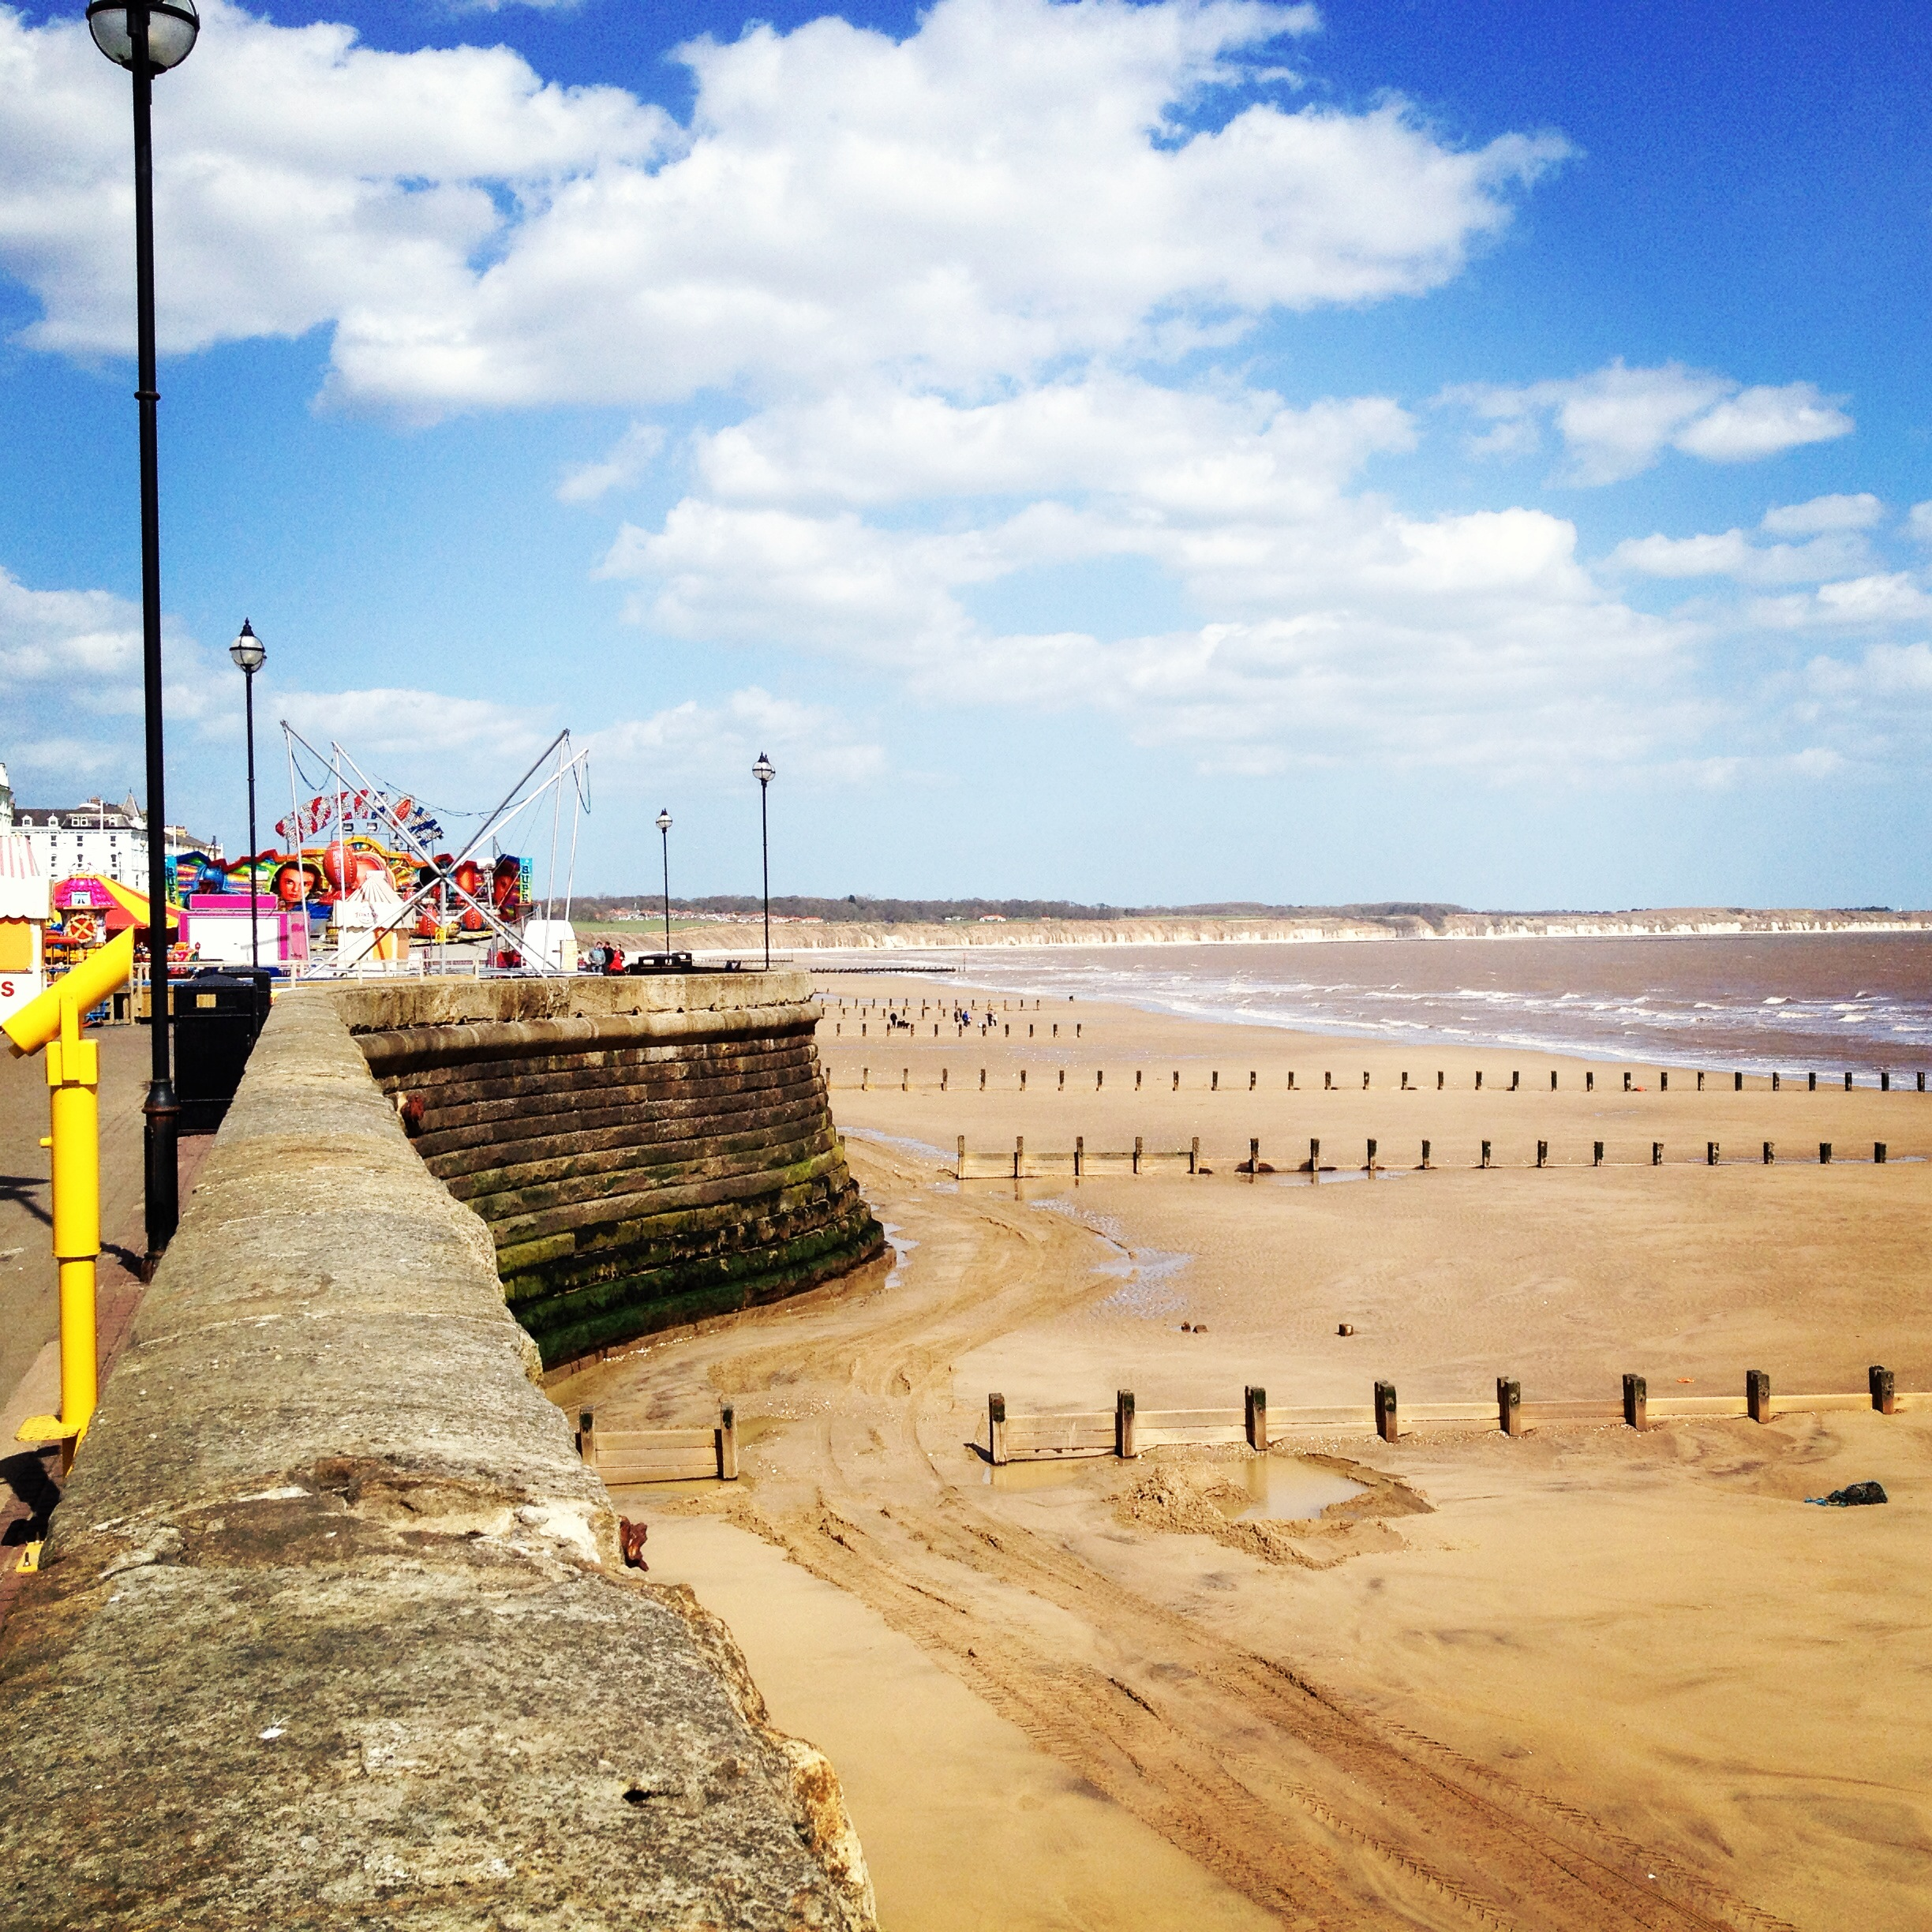 Ice Creams, Memories, Amusements and Beach Fun at Bridlington